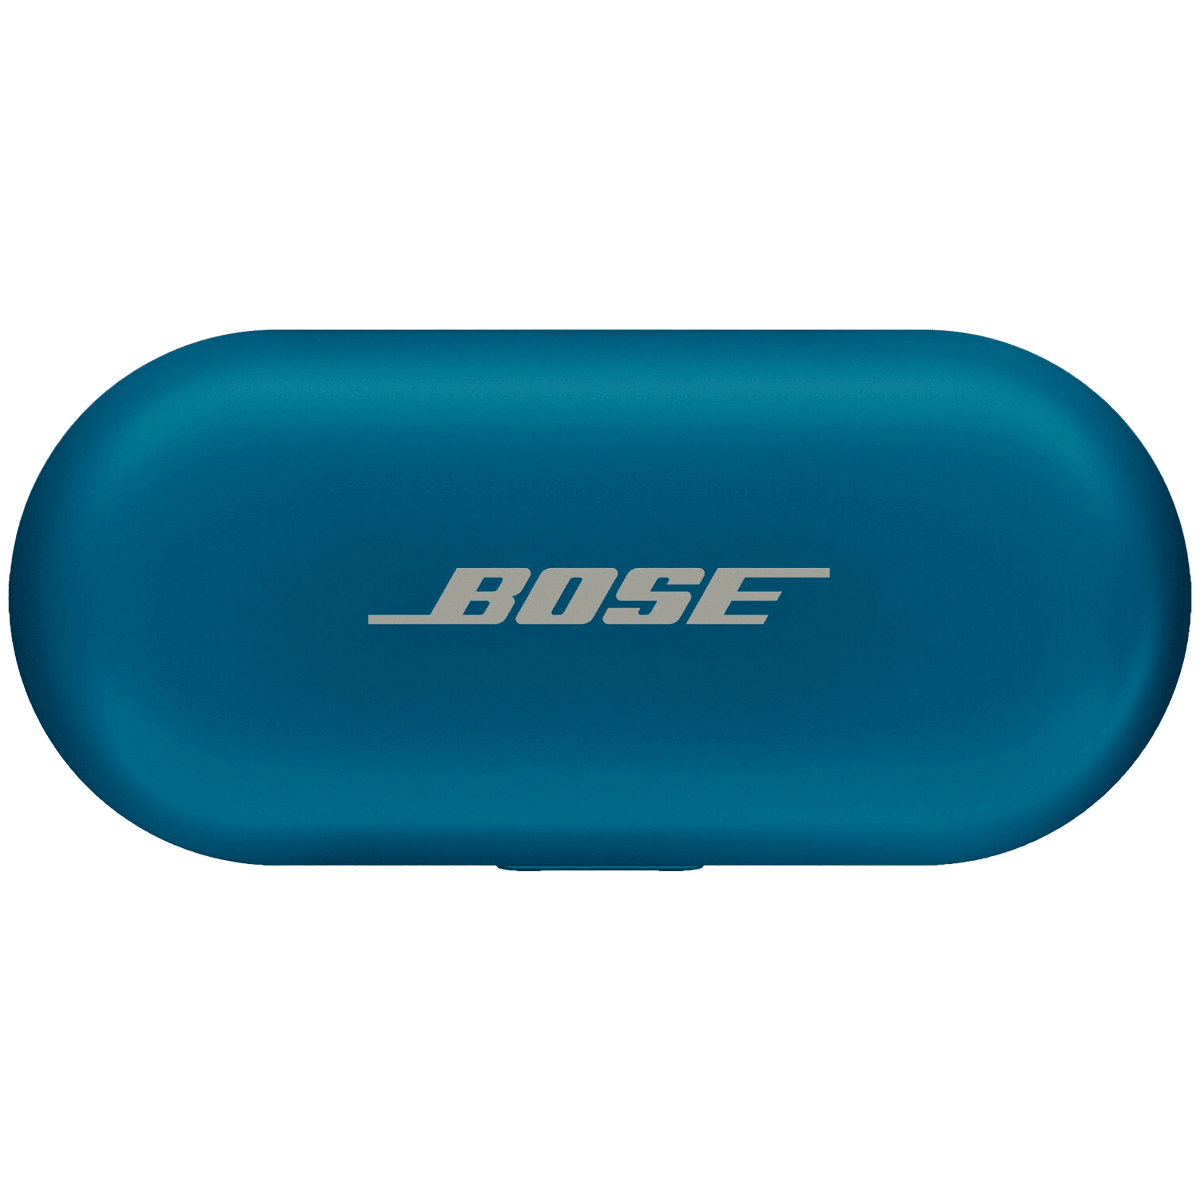 Bose Sport In-Ear Truly Wireless Earbuds with Mic (Bluetooth 5.0, Weather and Sweat Resistant, 805746-0020, Baltic Blue)